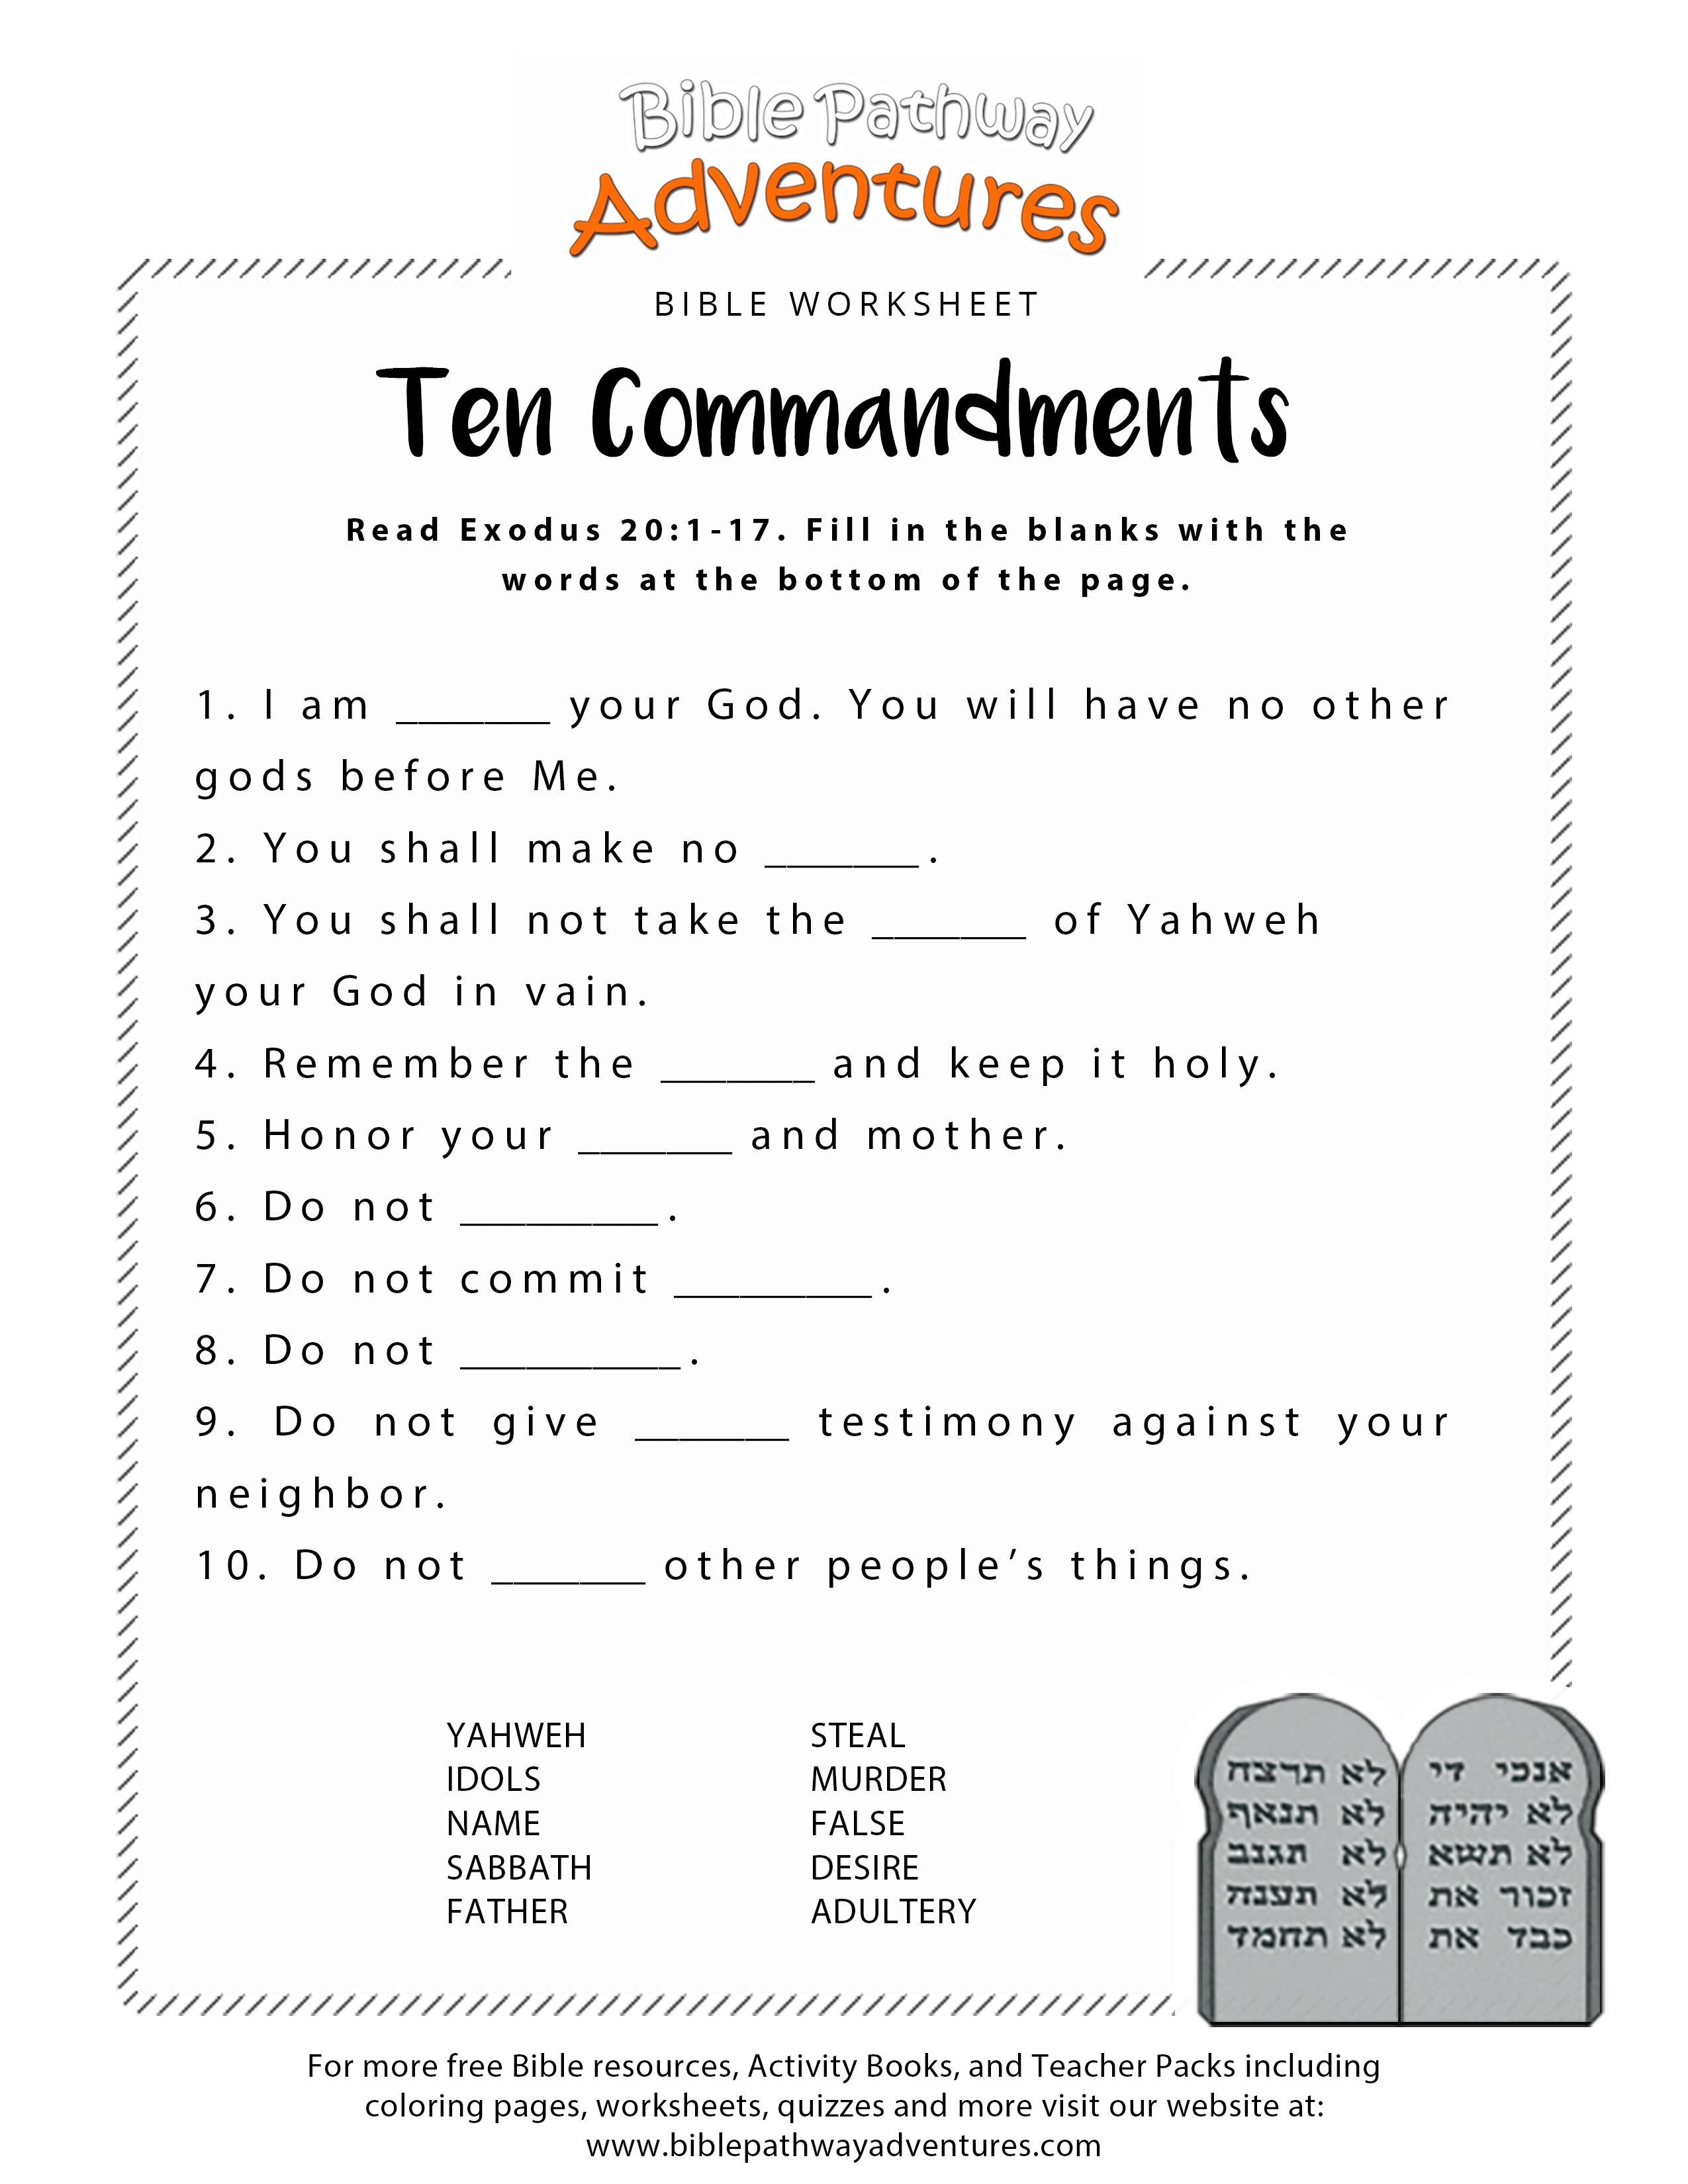 Free Printable Bible Worksheets For Youth – Worksheet Template - Free Printable Children's Bible Lessons